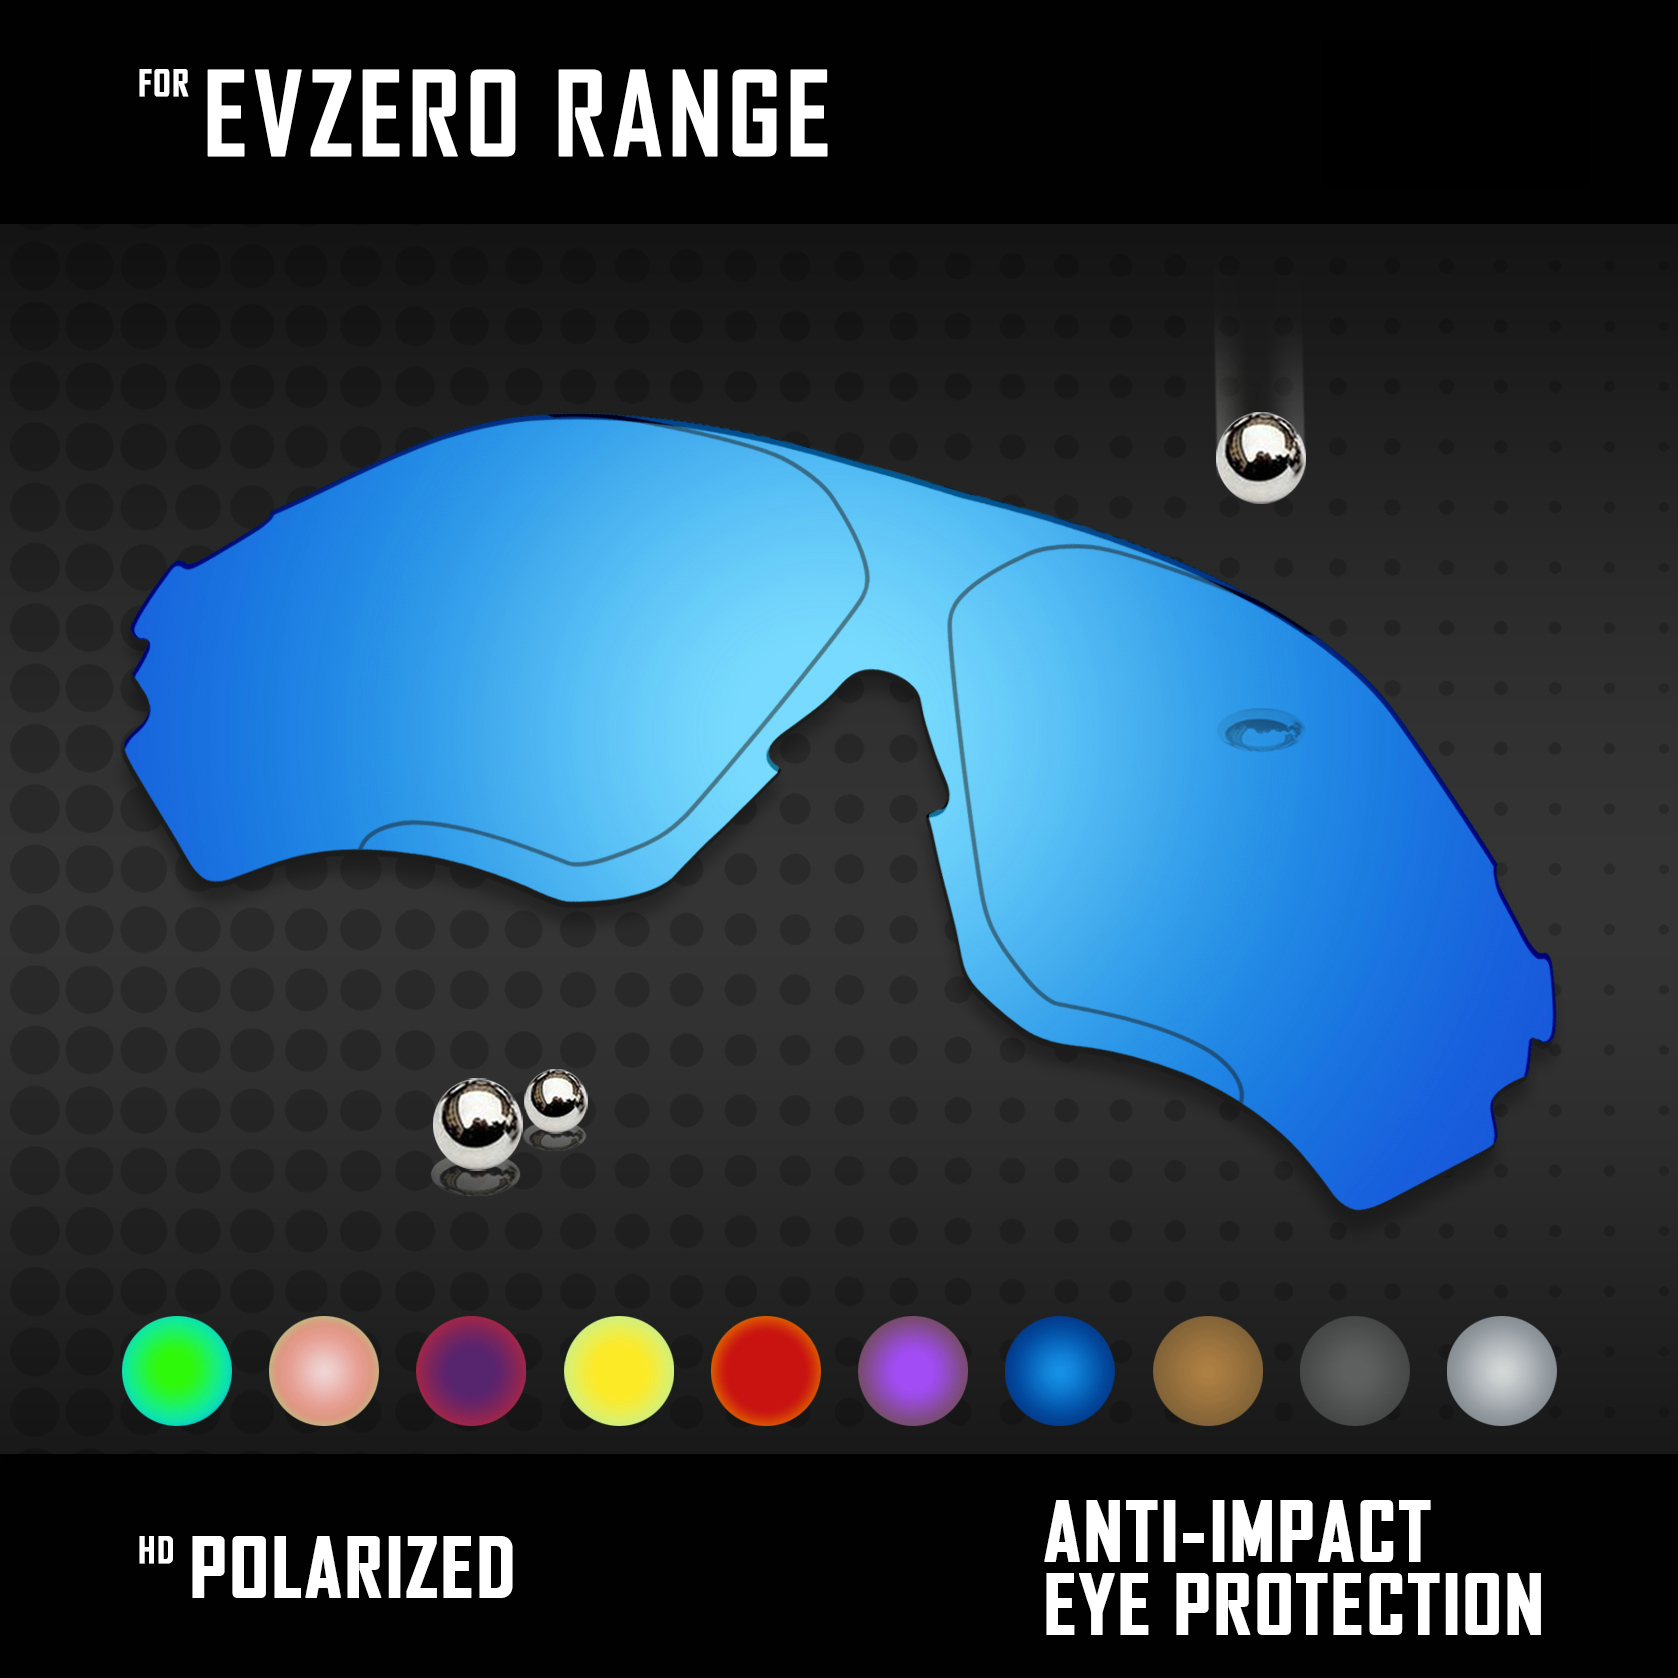 OOWLIT Lenses Replacements For Oakley EVZero Range Sunglasses Polarized - Multi Colors